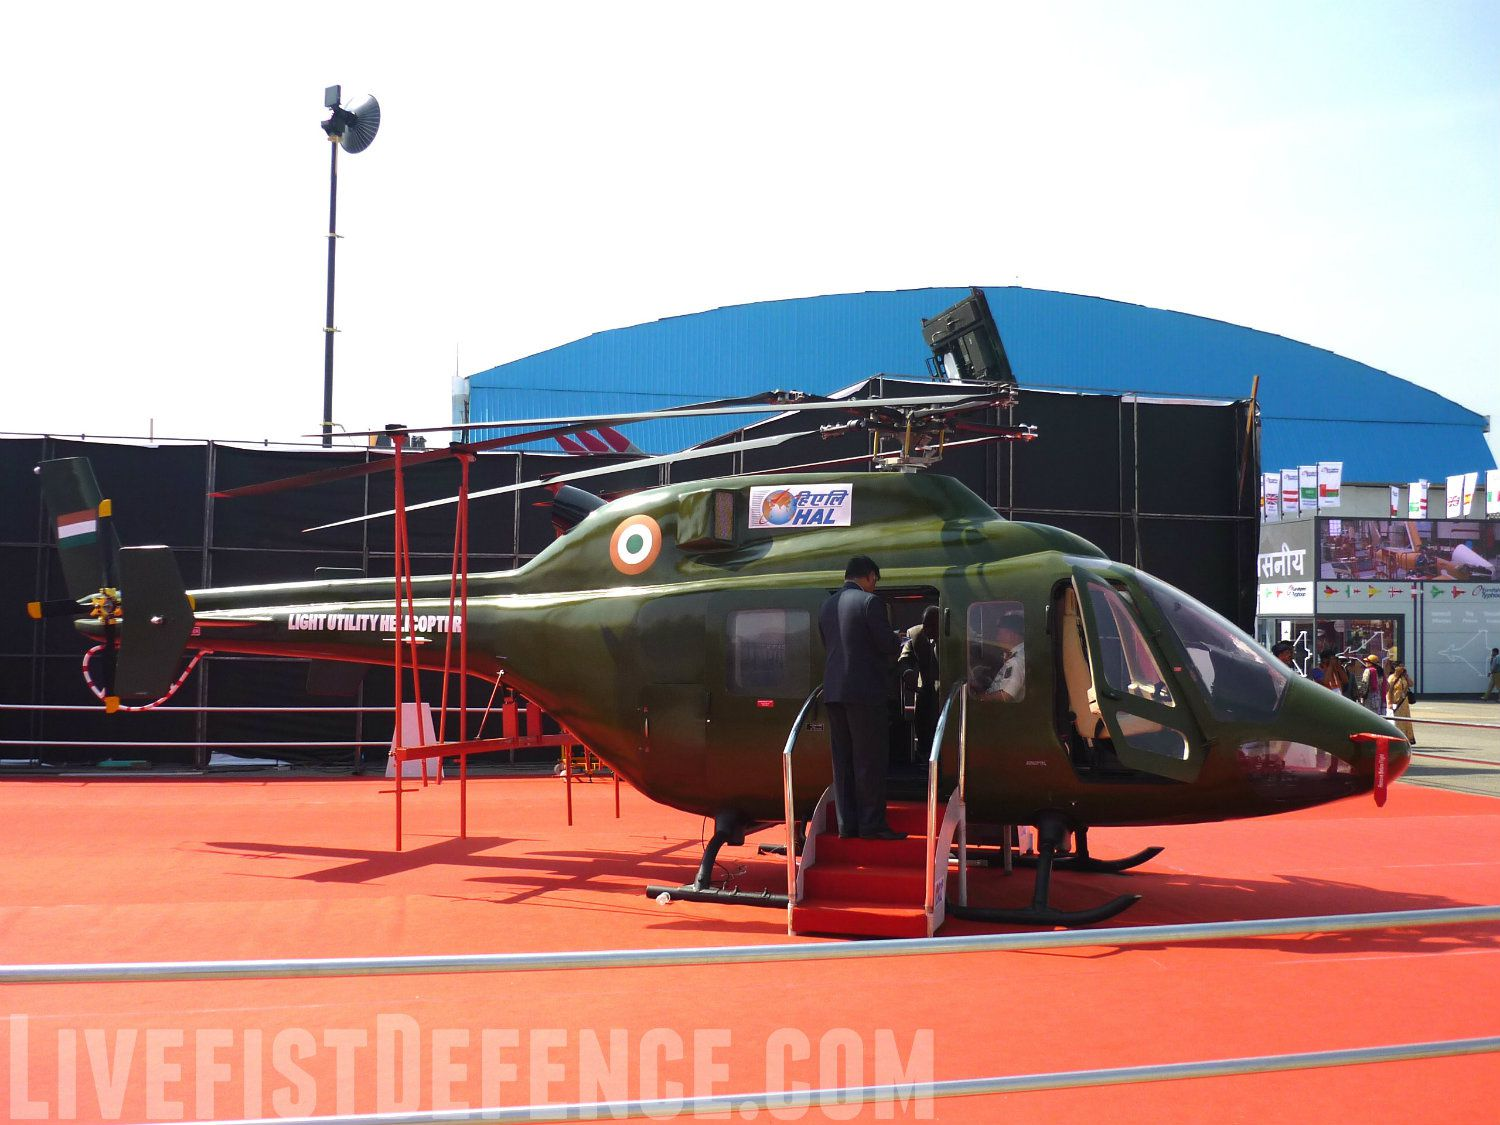 HAL's Light Utility Copter - photo Livefist